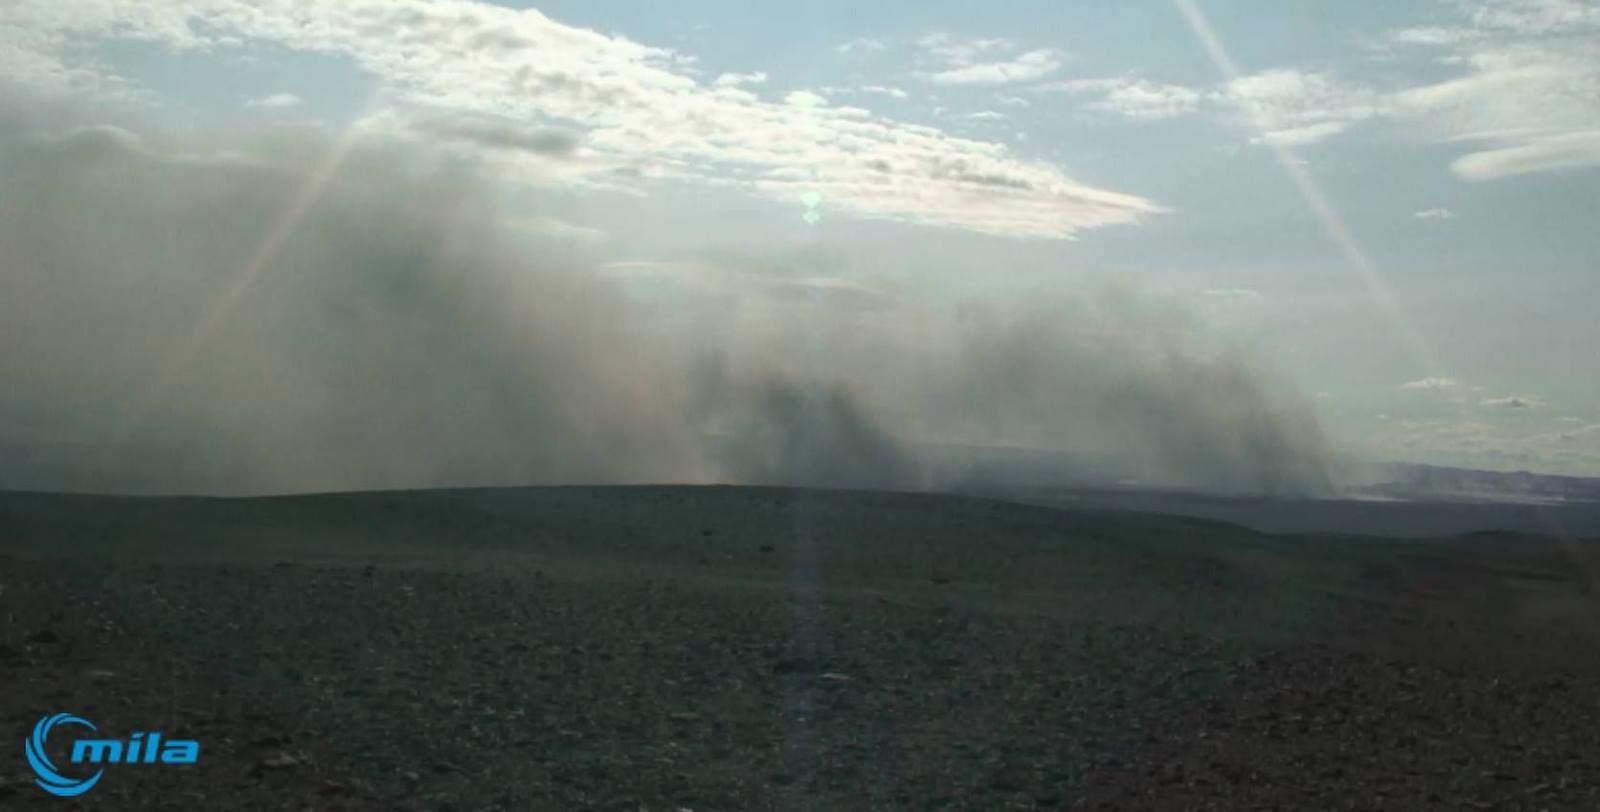 Webcam du Bárðarbunga - doc. Mila / NB Some people have been follow­ing webcams placed on Bárðarbunga. Cur­rently, th­ere is a sand­storm th­ere, but not an erupti­on.